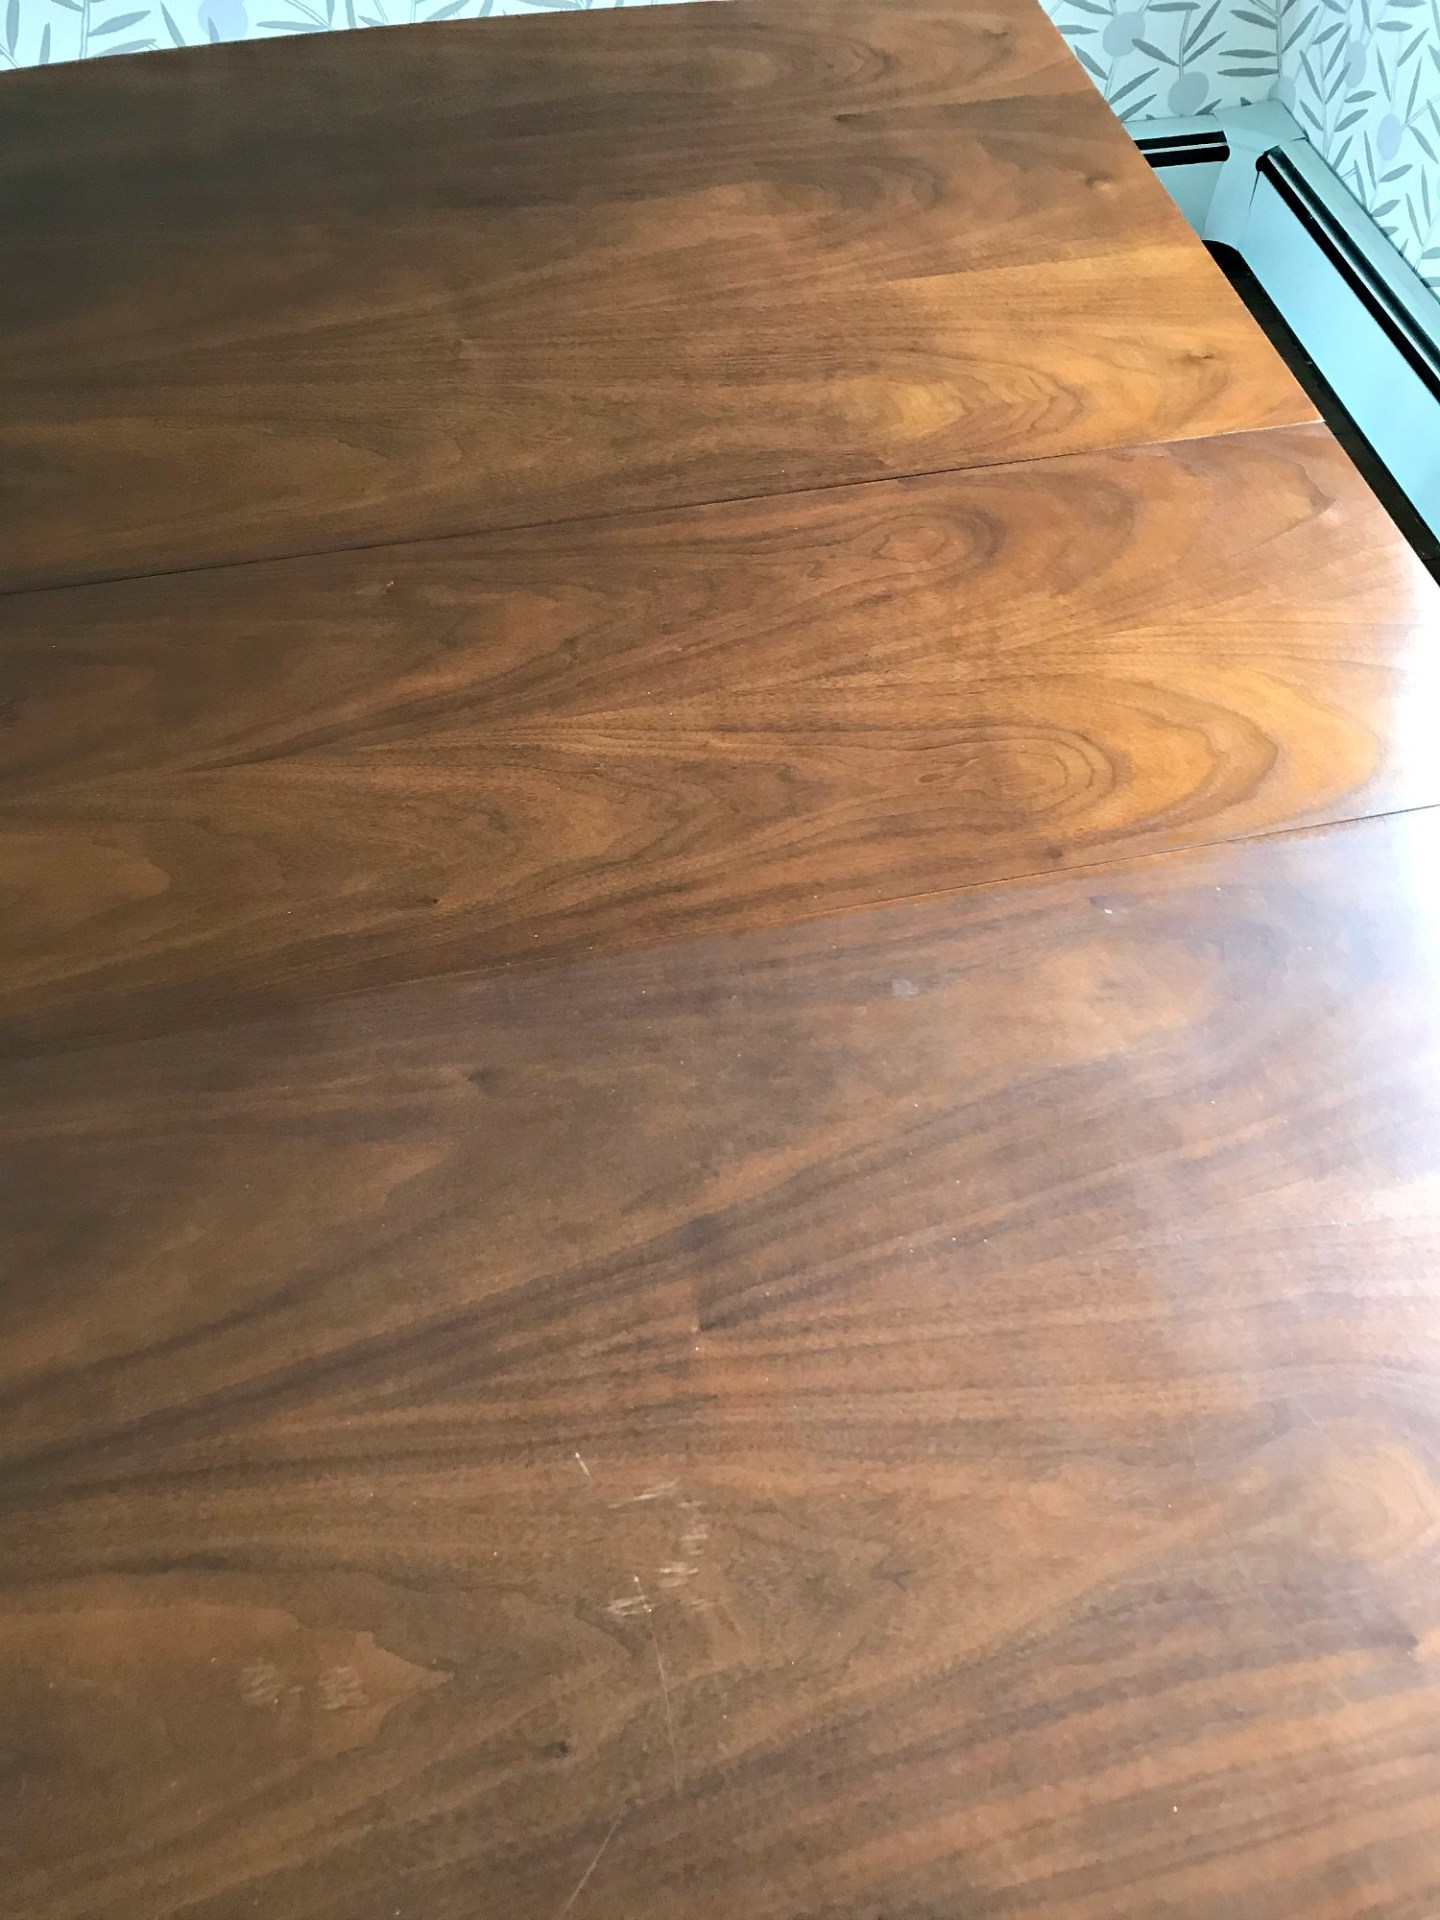 How to revive wood without refinishing